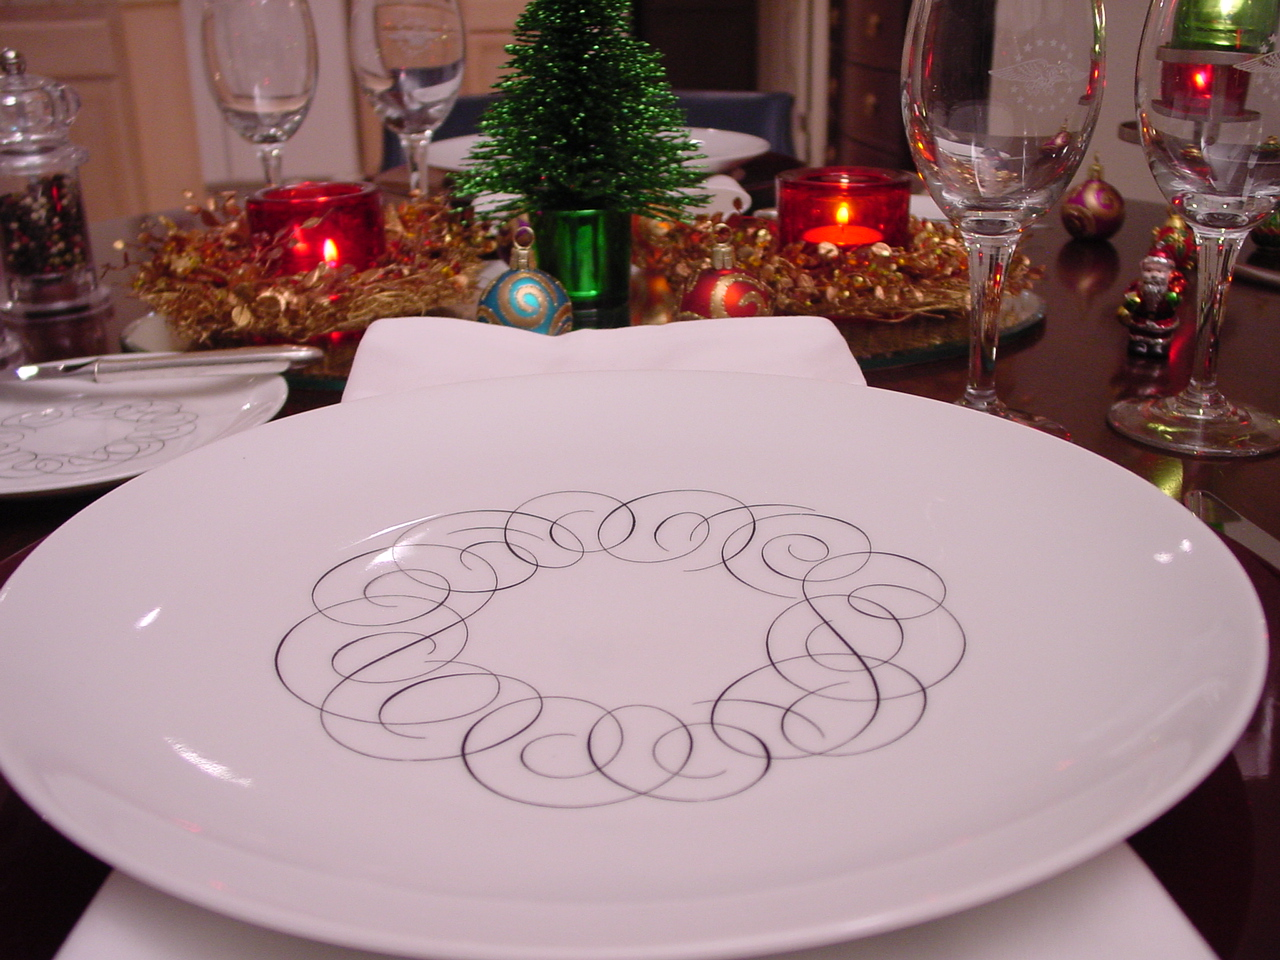 Red, white, green & black are the colors of this holiday table setting using Pan Am's 1950s President Special china pattern designed by Rosenthal